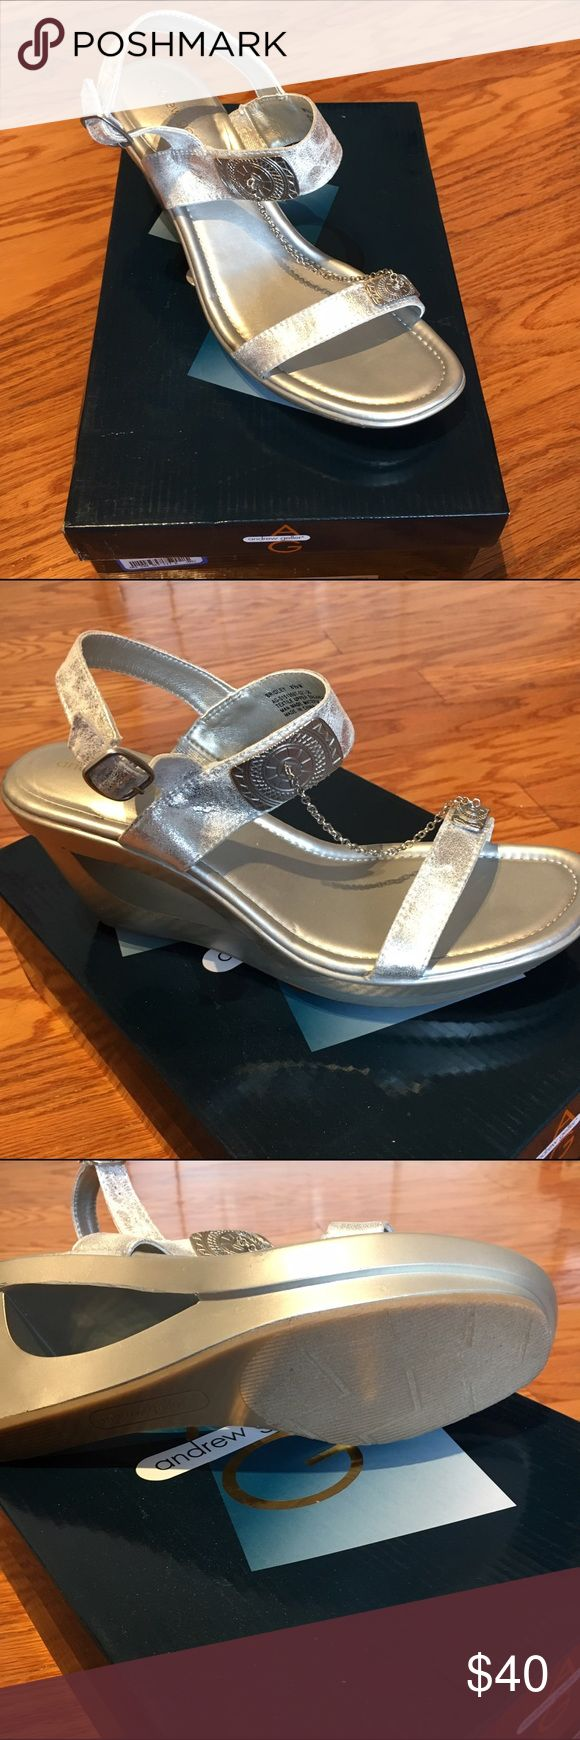 Silver wedge sandals  Silver wedge sandal with chain accent toe to ankle band. New in Box! Andrew Geller Shoes Wedges